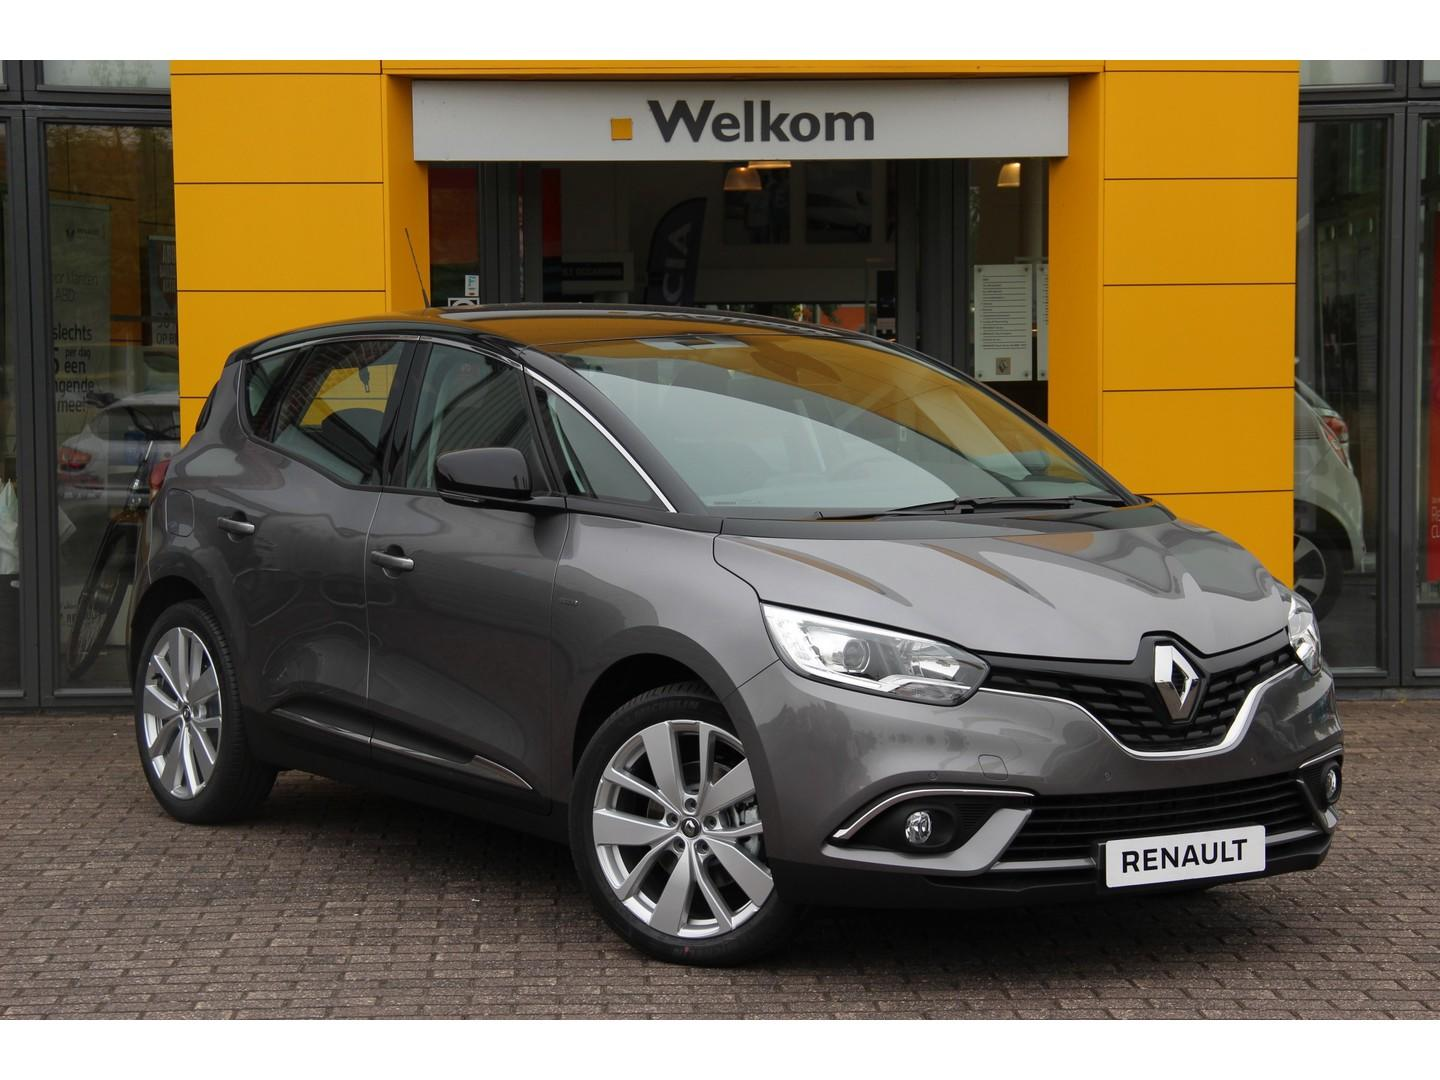 Renault Scénic 1.3 tce 140pk edc limited